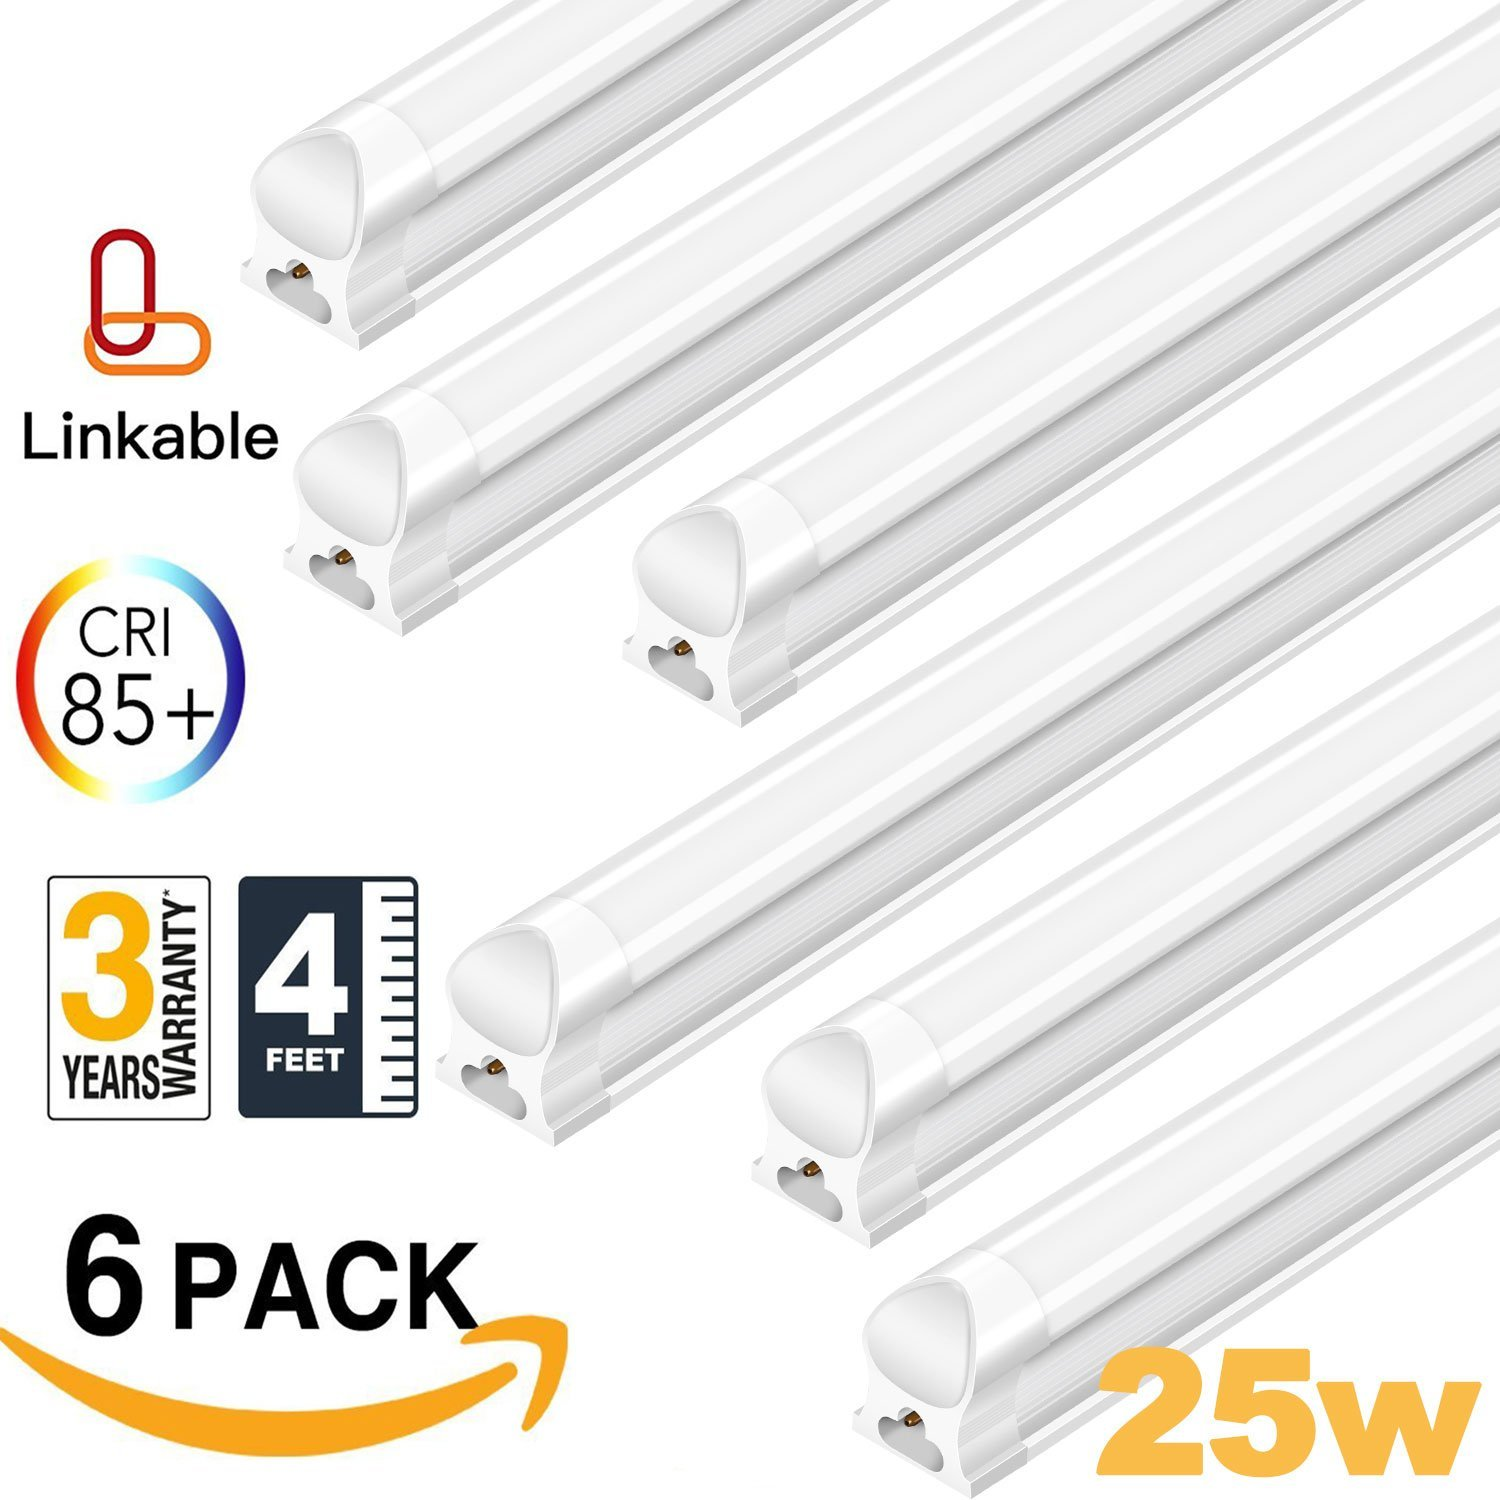 AntLux Linkable 4FT LED Shop Lights for Garage, 25W T8 Integrated Strip Ceiling Light Fixtures, 2500lm, 5000K, Plug in with ON/Off Switch, Fluorescent Tube Replacement for Workshop Basement, 6 Pack